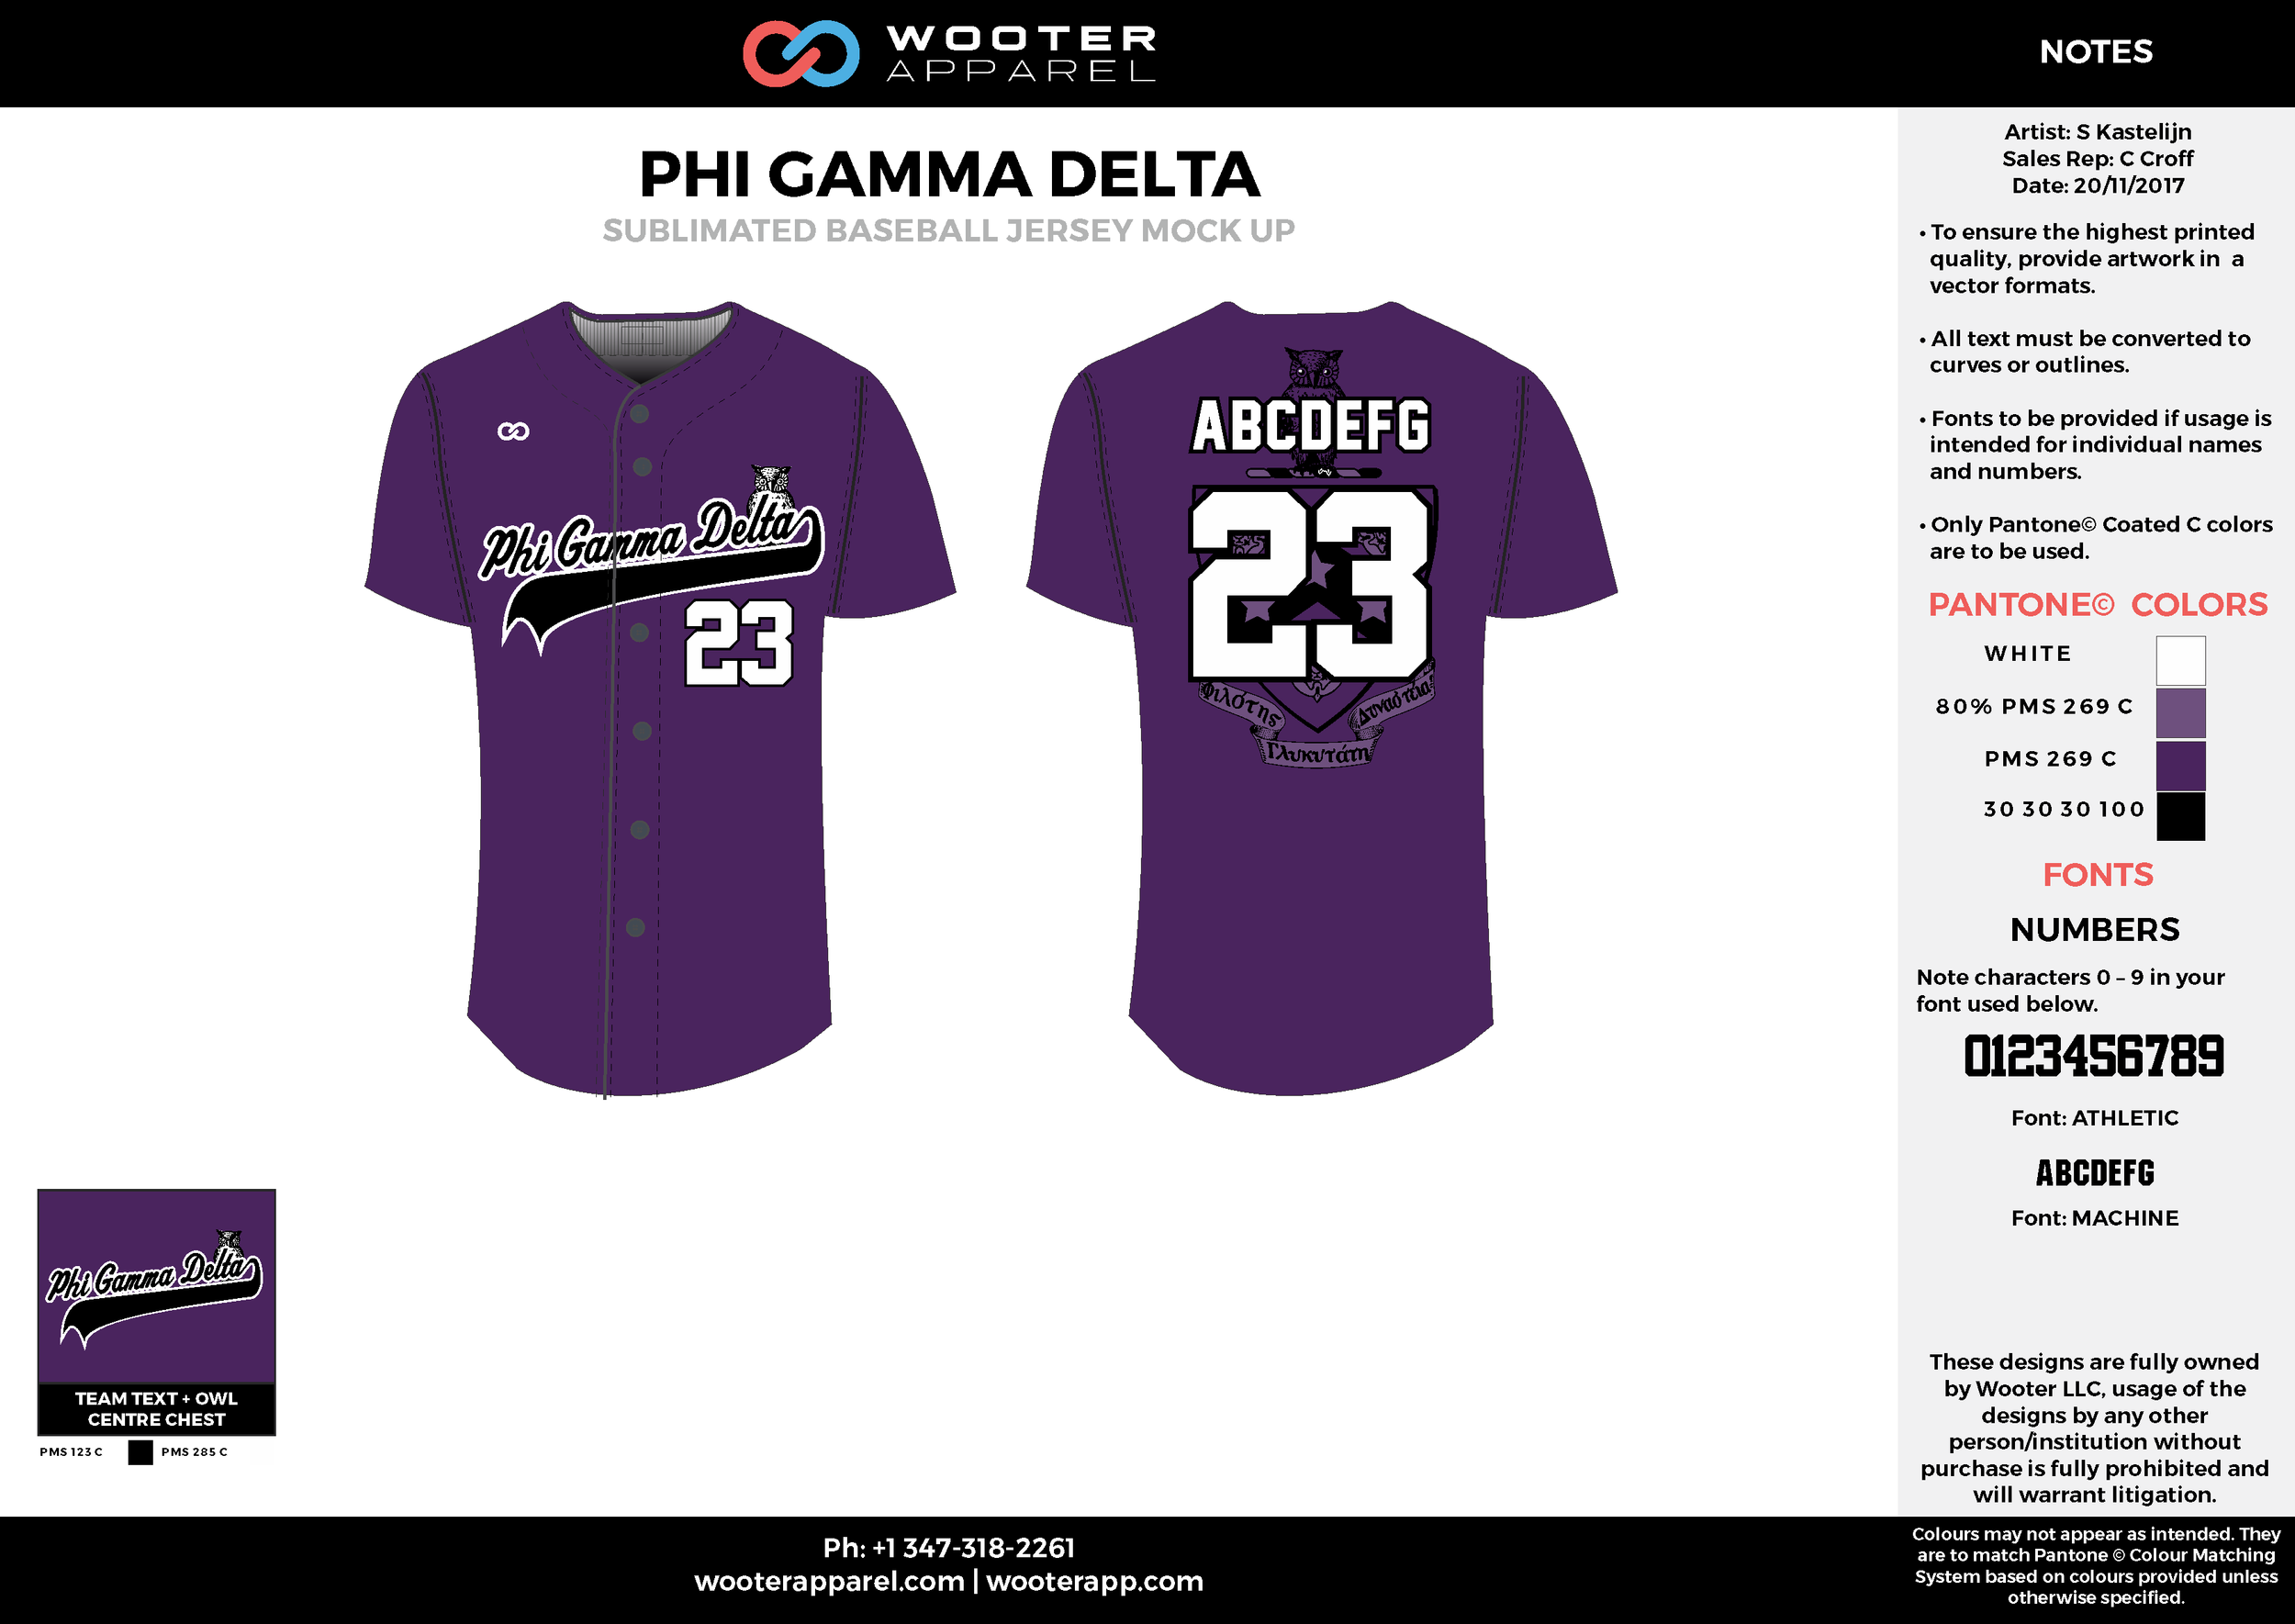 PHI GAMMA DELTA violet black white baseball uniforms jerseys tops